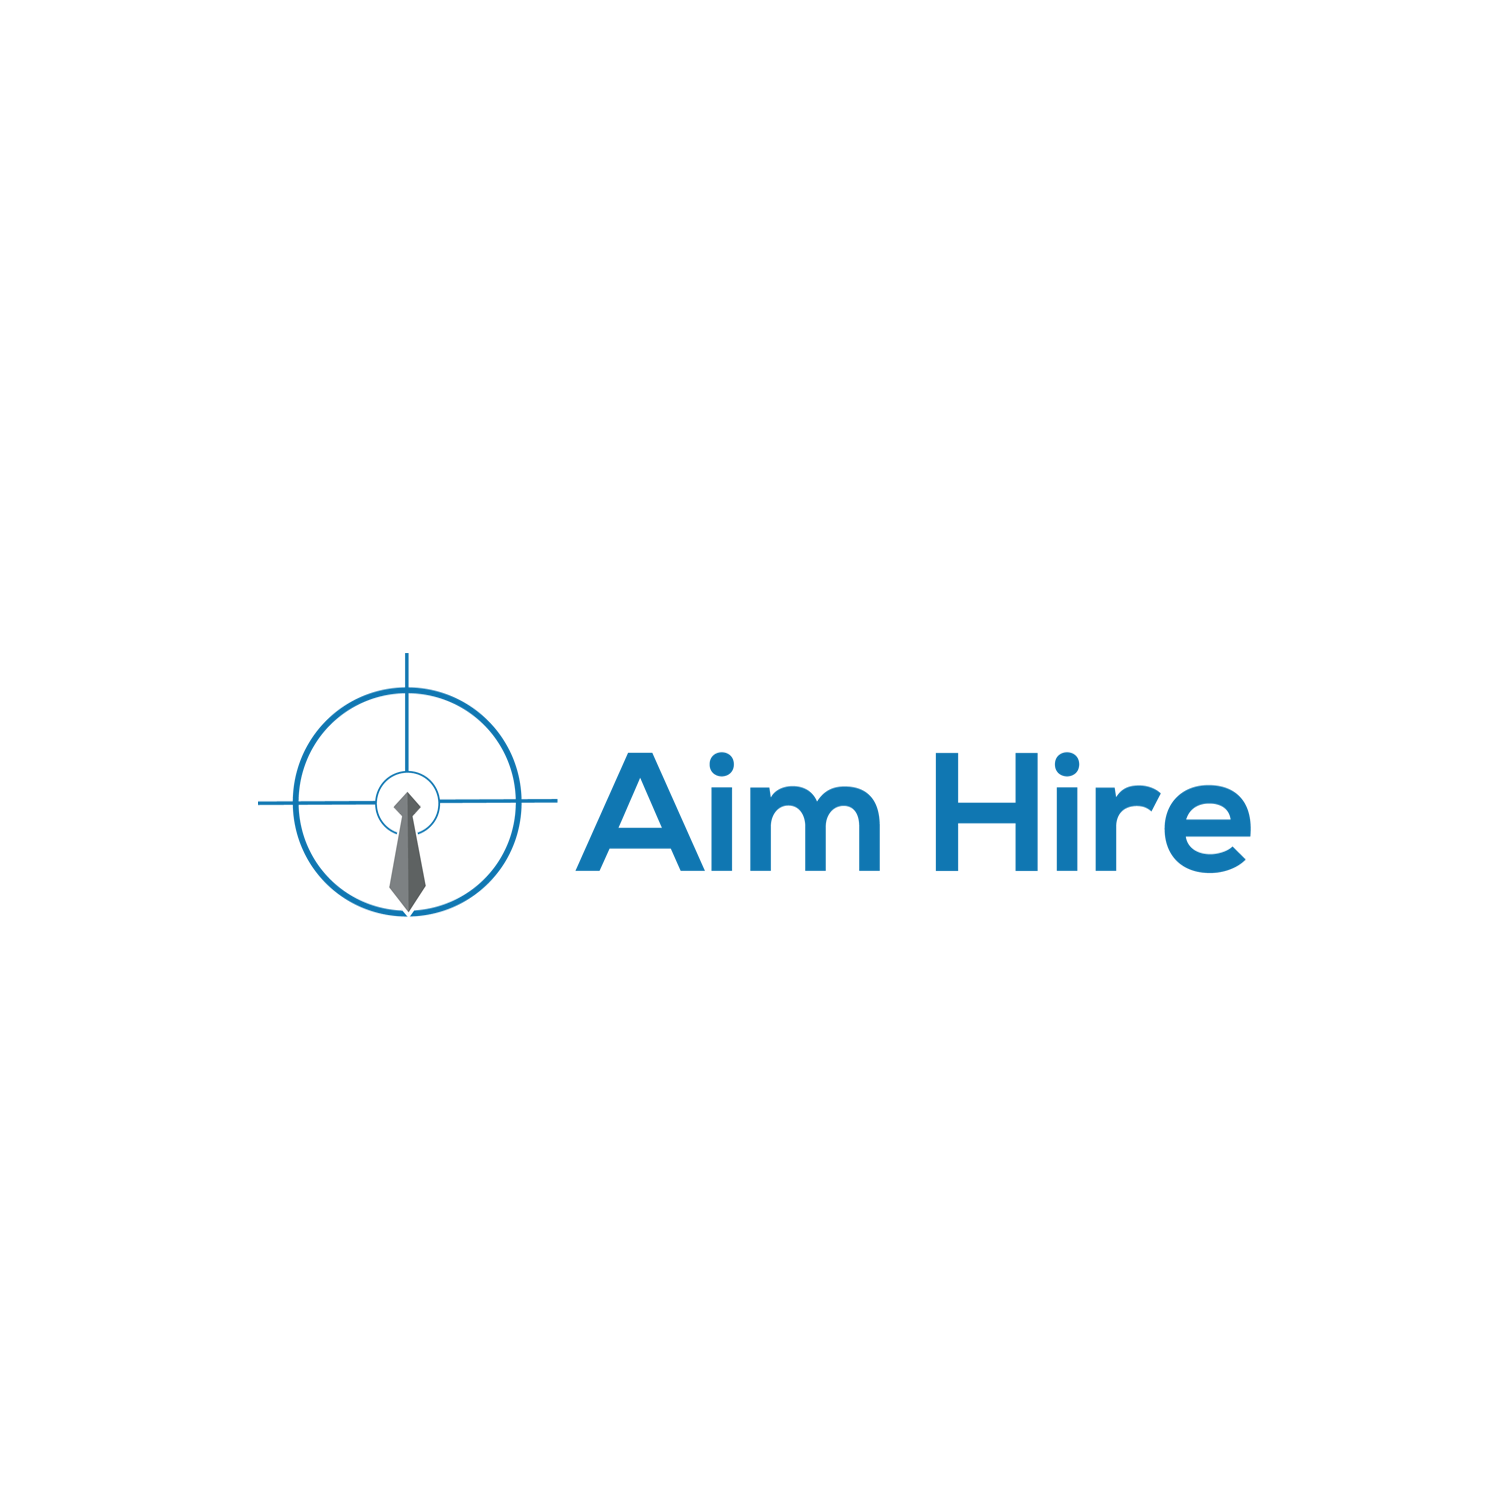 Modern Professional Employment Agency Logo Design For Aim Hire By Smith Parker Design 13564975